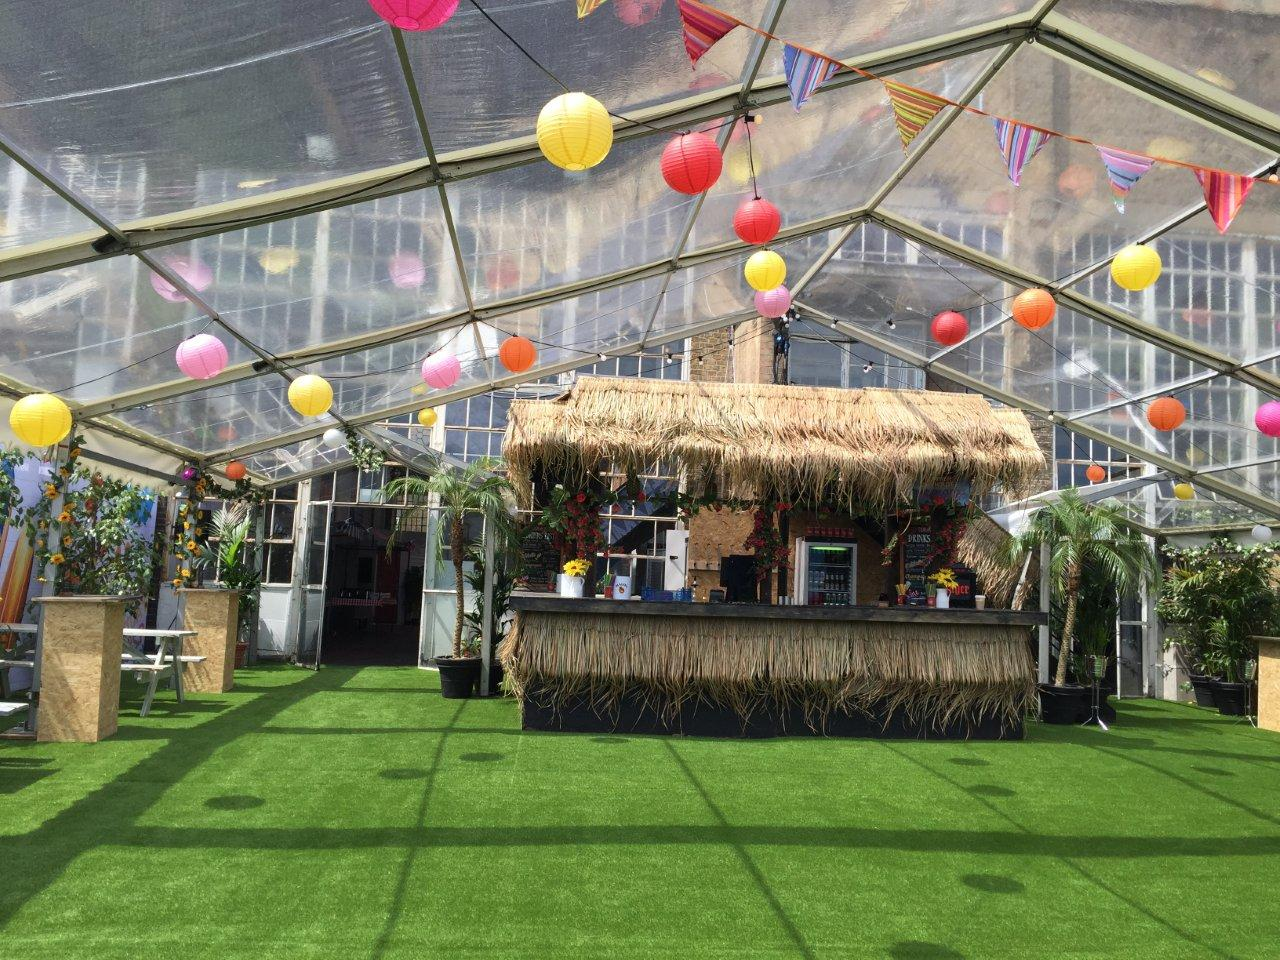 City Summer House Summer Party E1. Close the office early and treat your staff to well-deserved party at City Summer House